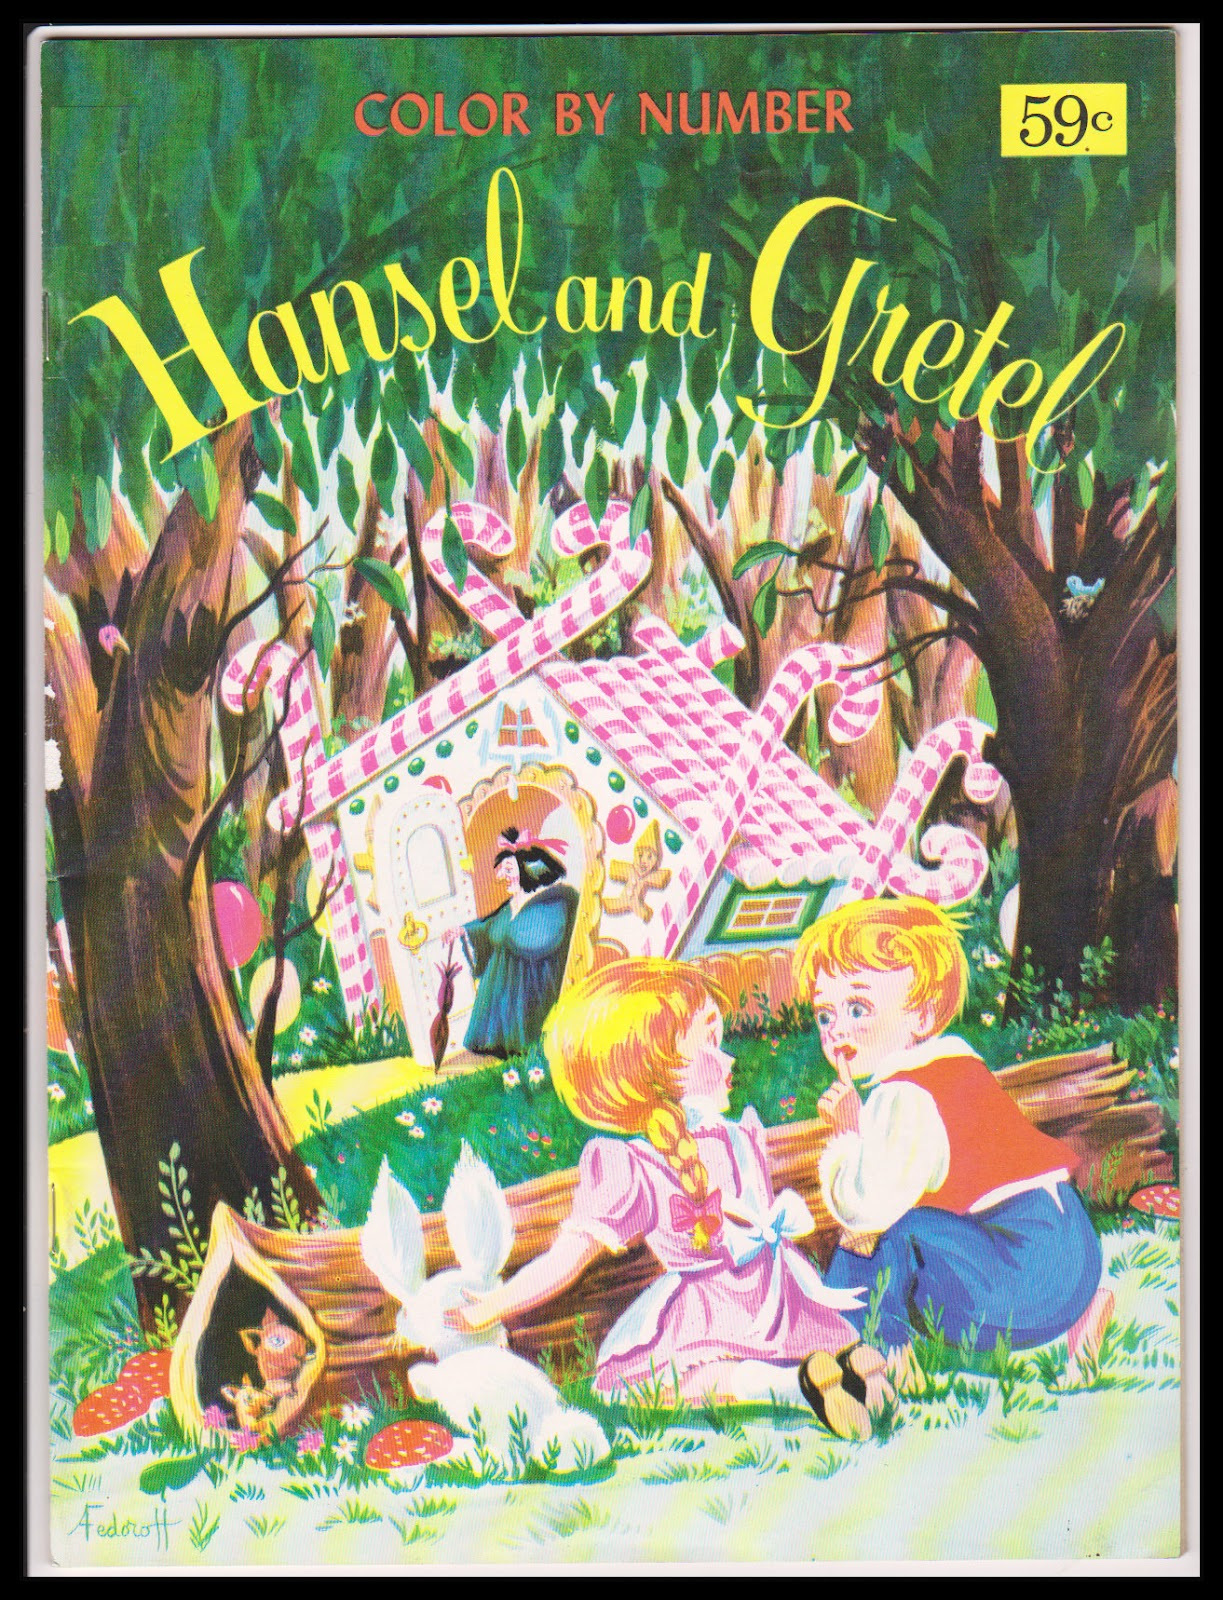 My Vintage Books & Other Finds: Color By Number Hansel and Gretel